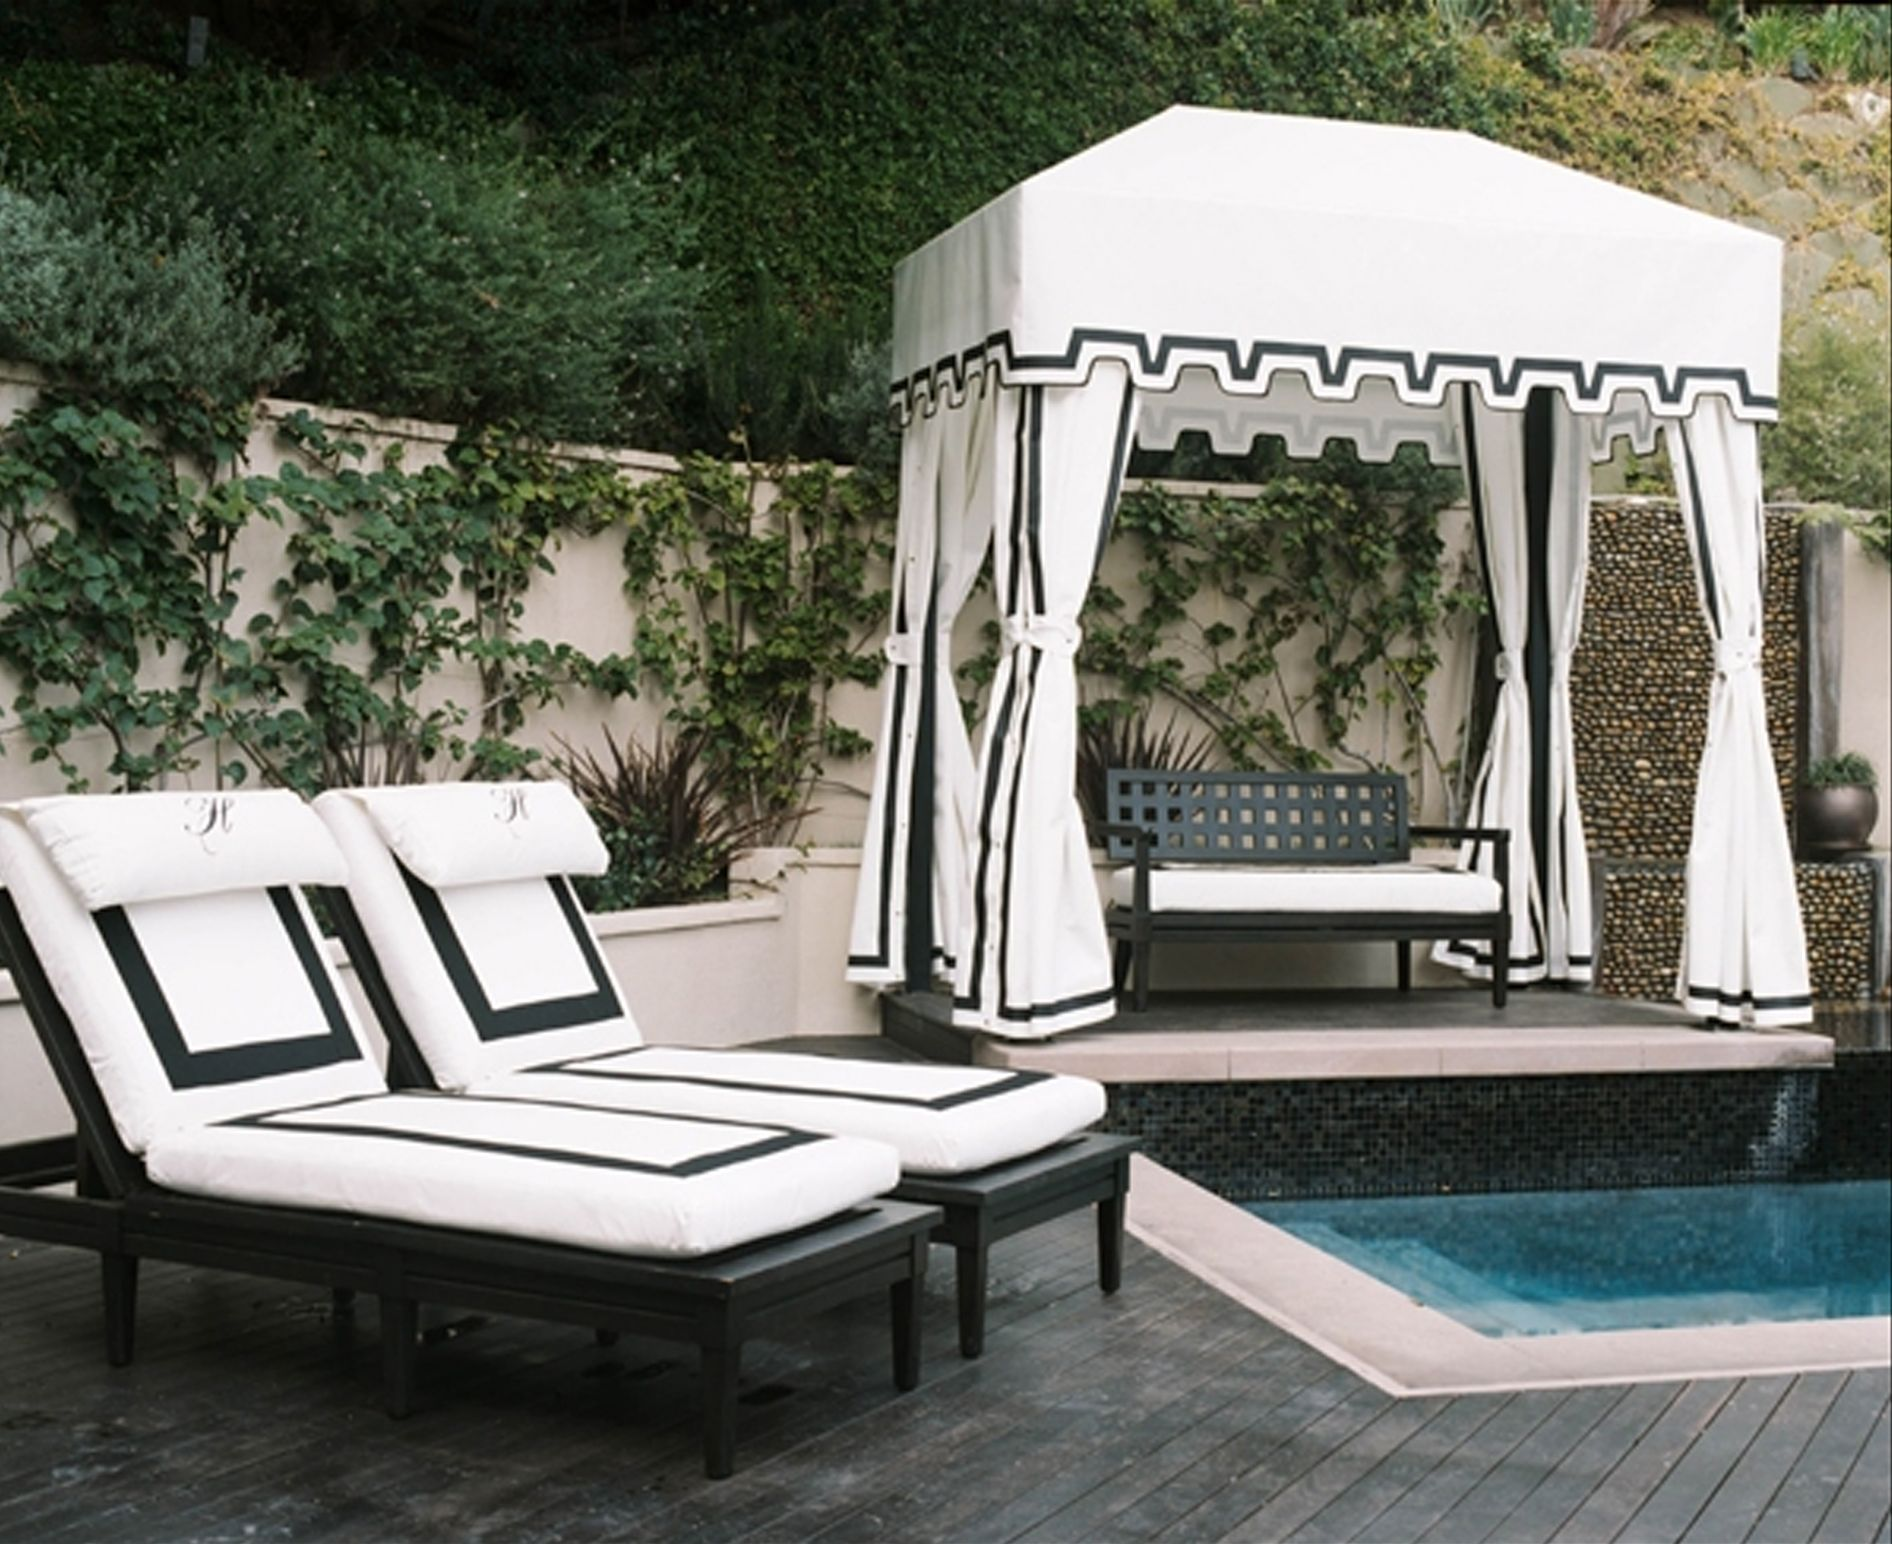 Outdoor Cabana depiction of pool cabana kits design | swimming pool | pinterest